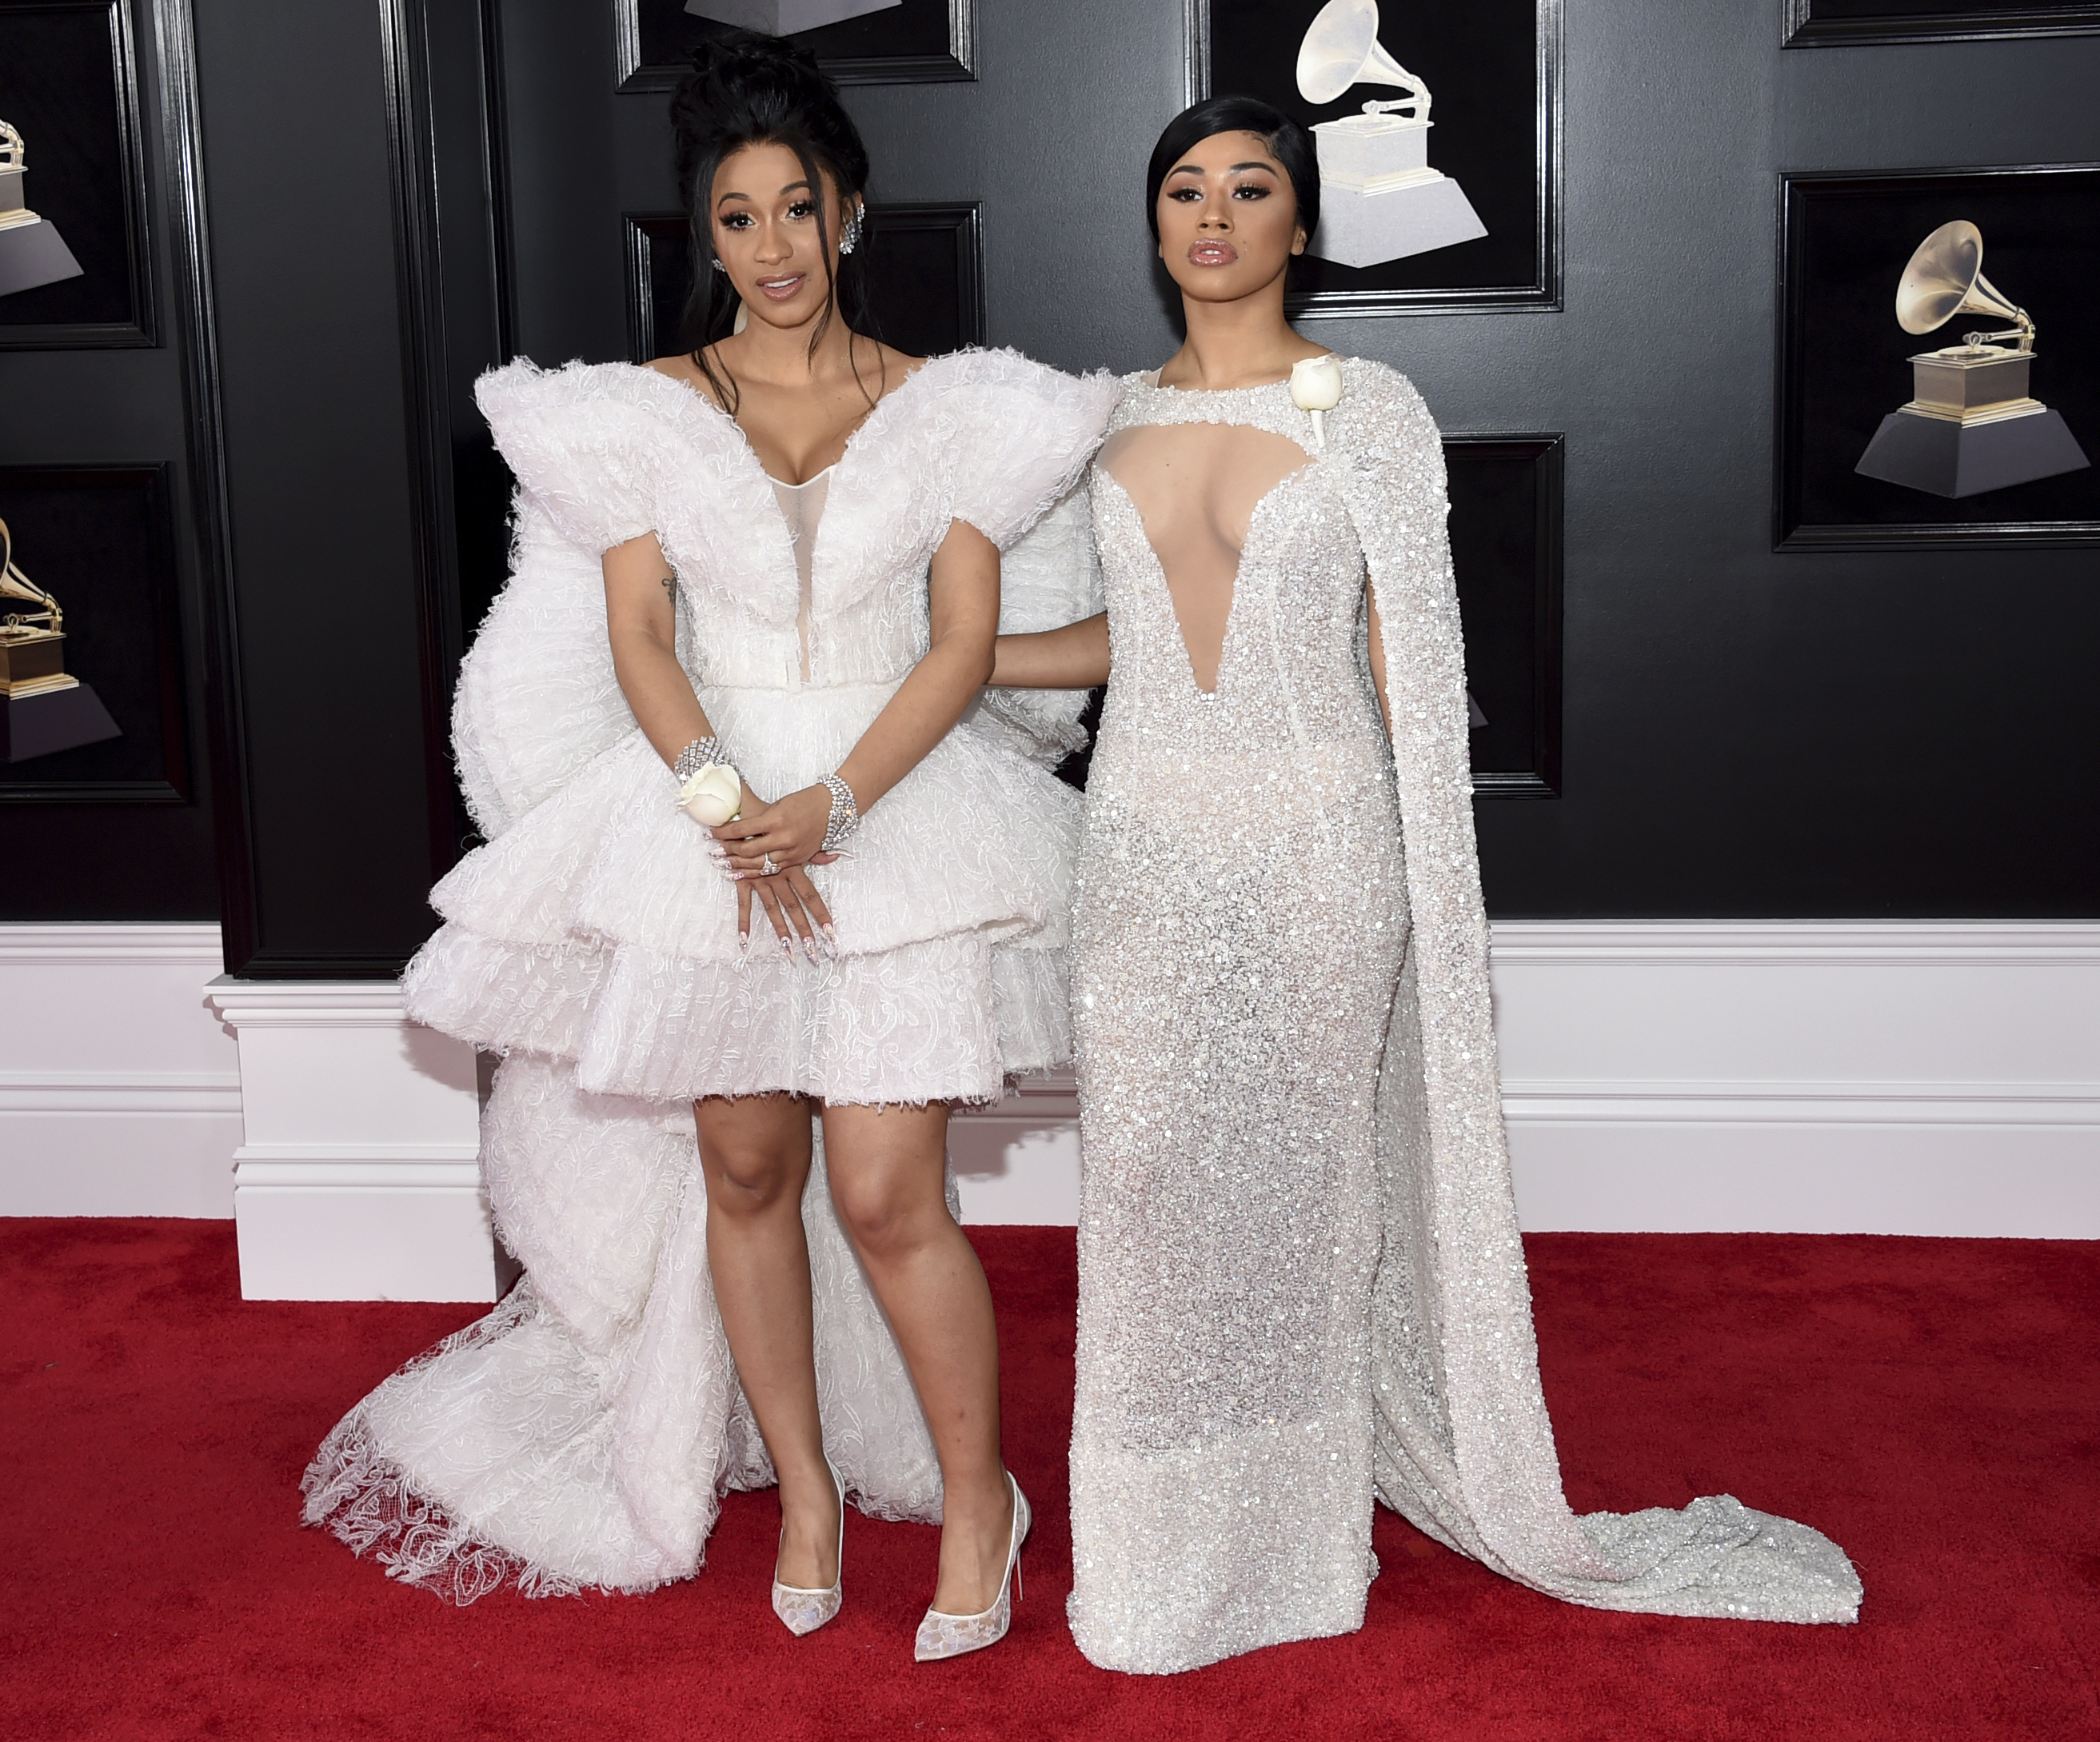 <div class='meta'><div class='origin-logo' data-origin='AP'></div><span class='caption-text' data-credit='Evan Agostini/Invision/AP'>Cardi B, left, and Hennessy Carolina arrive at the 60th annual Grammy Awards at Madison Square Garden on Sunday, Jan. 28, 2018, in New York.</span></div>